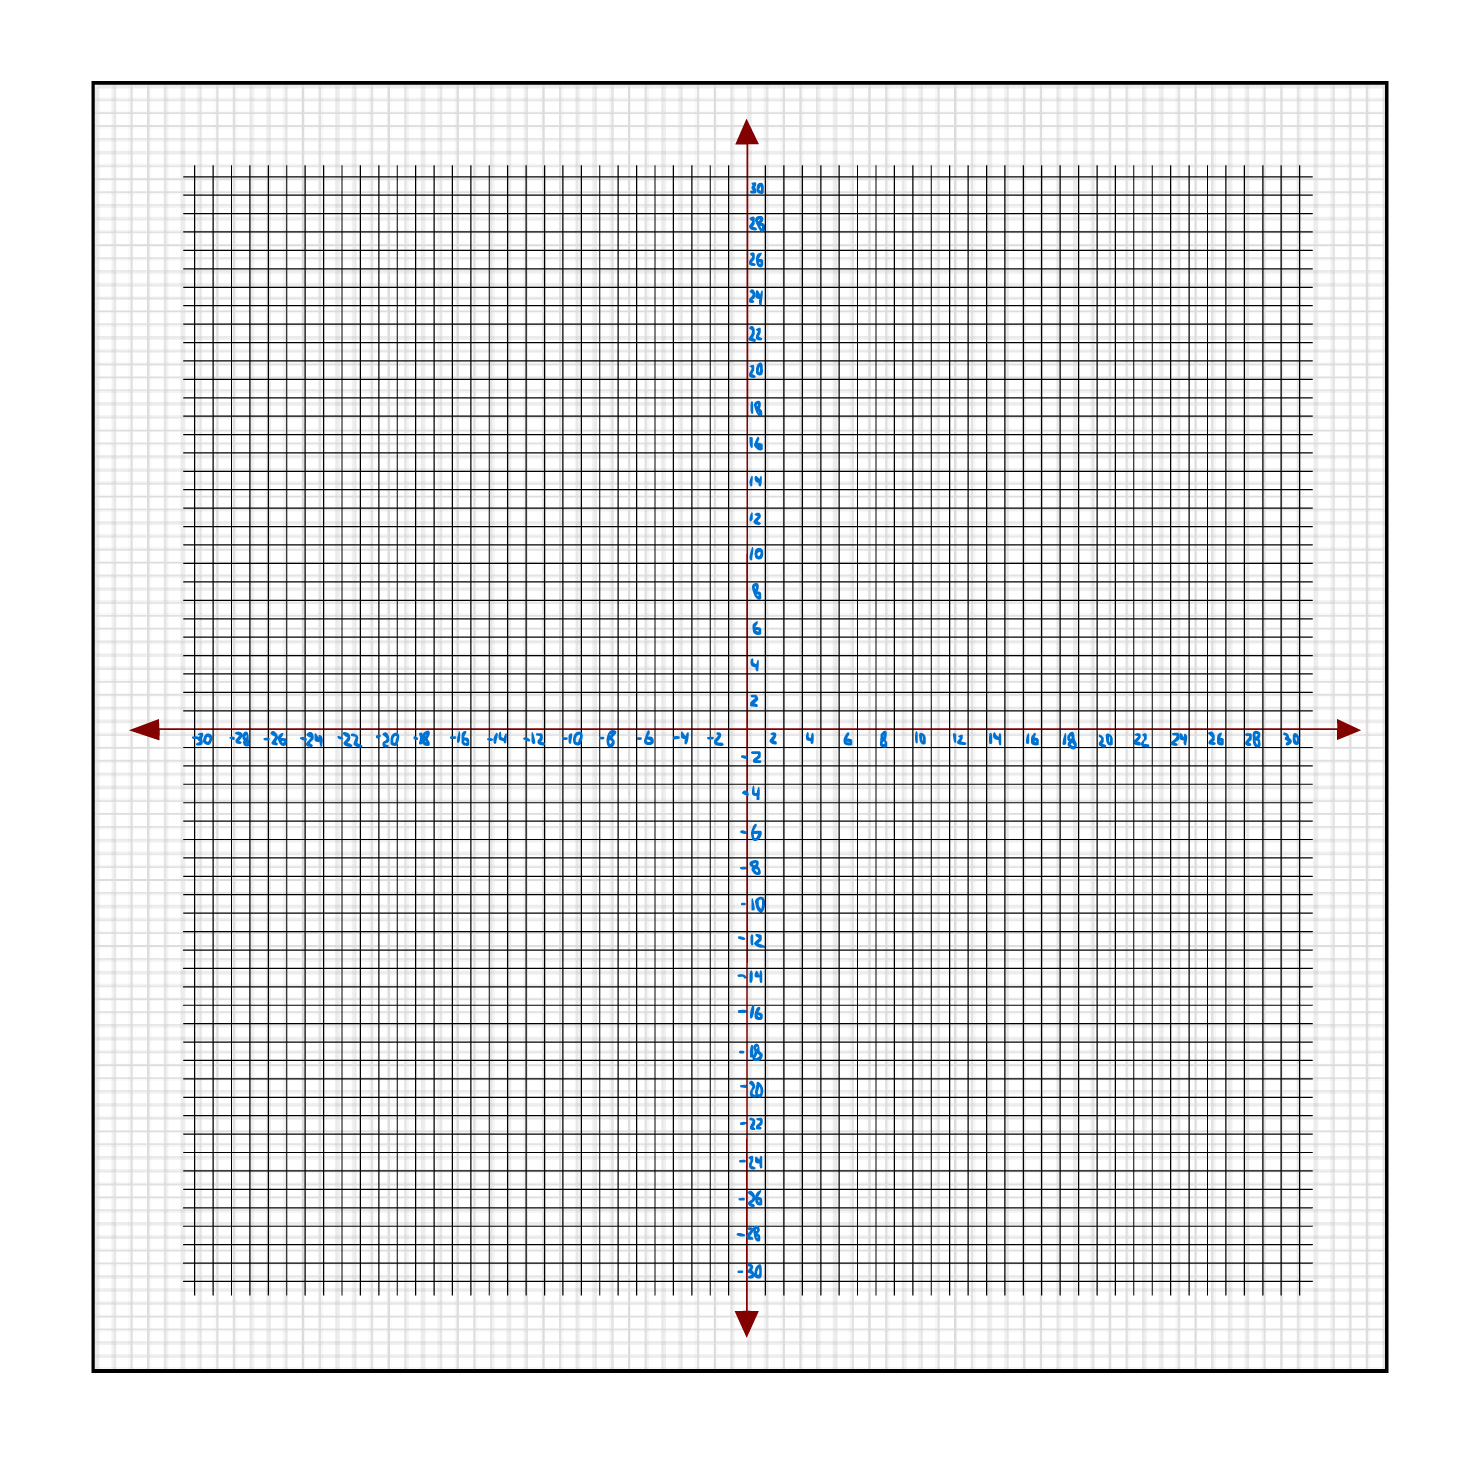 worksheet Graph Paper With Numbers 30x30 graph paper with numbers by nxr064 on deviantart nxr064